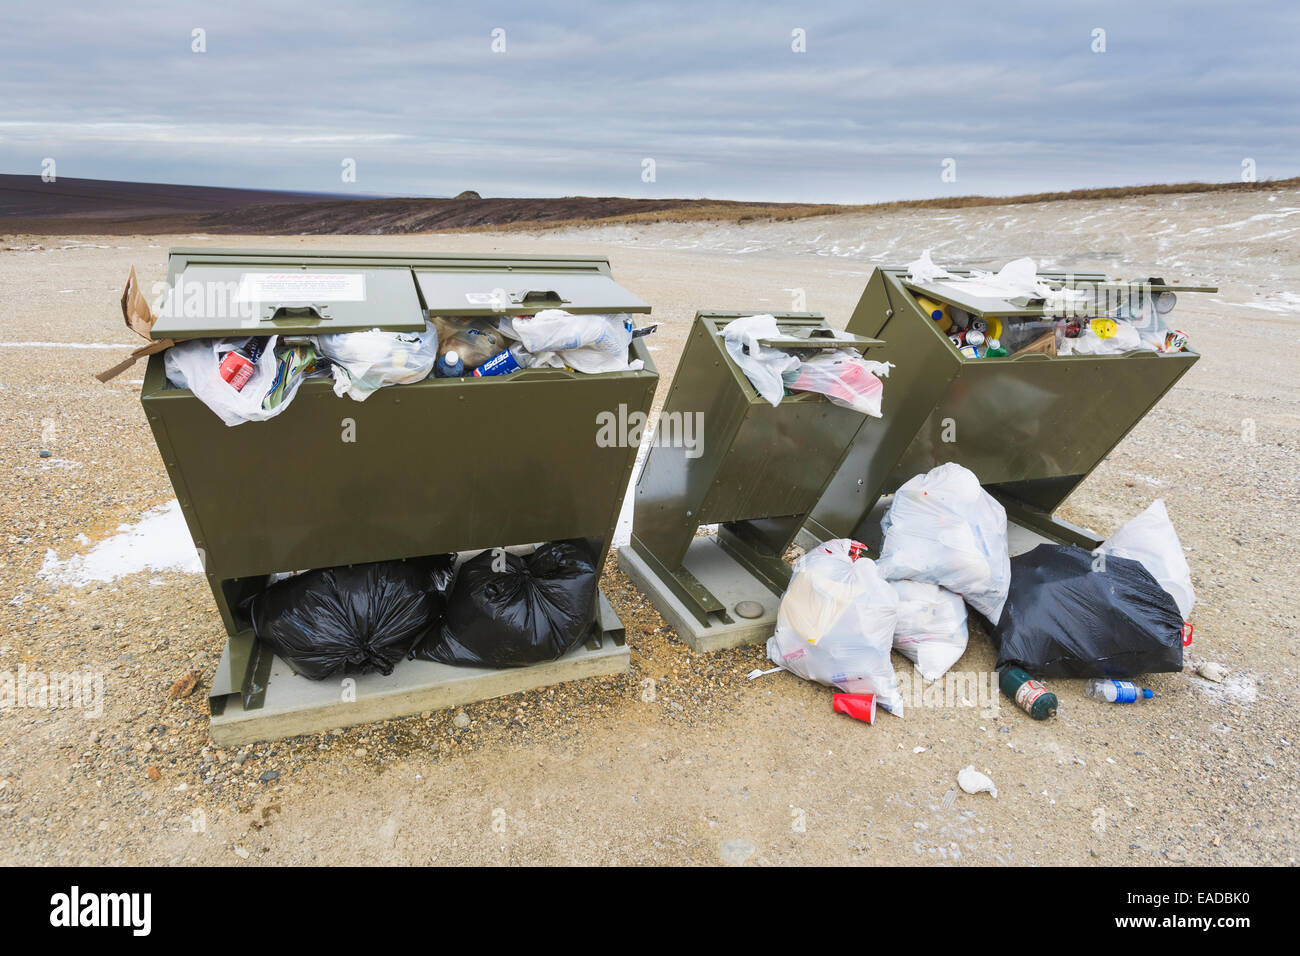 Over filled bear proof trash containers along the James Dalton Highway, Arctic North Slope, Alaska. - Stock Image